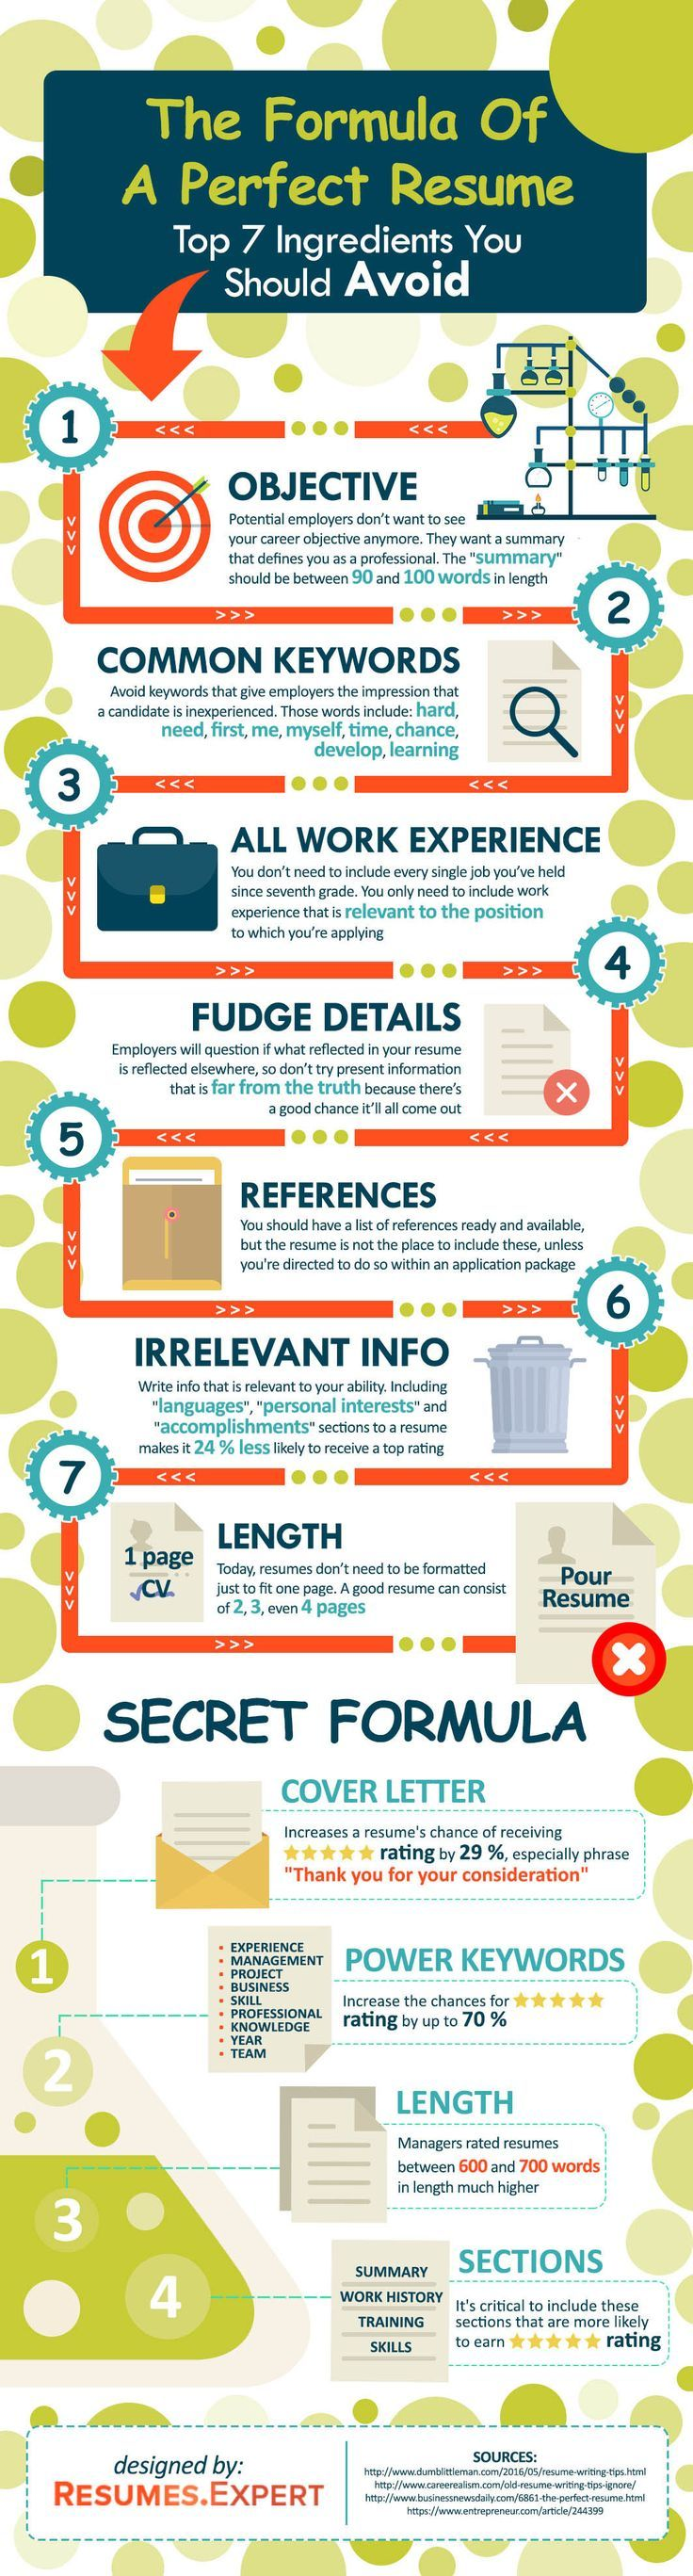 The Formula of a Perfect Resume #Infographic #Career #Resume // Career Advice Ideas